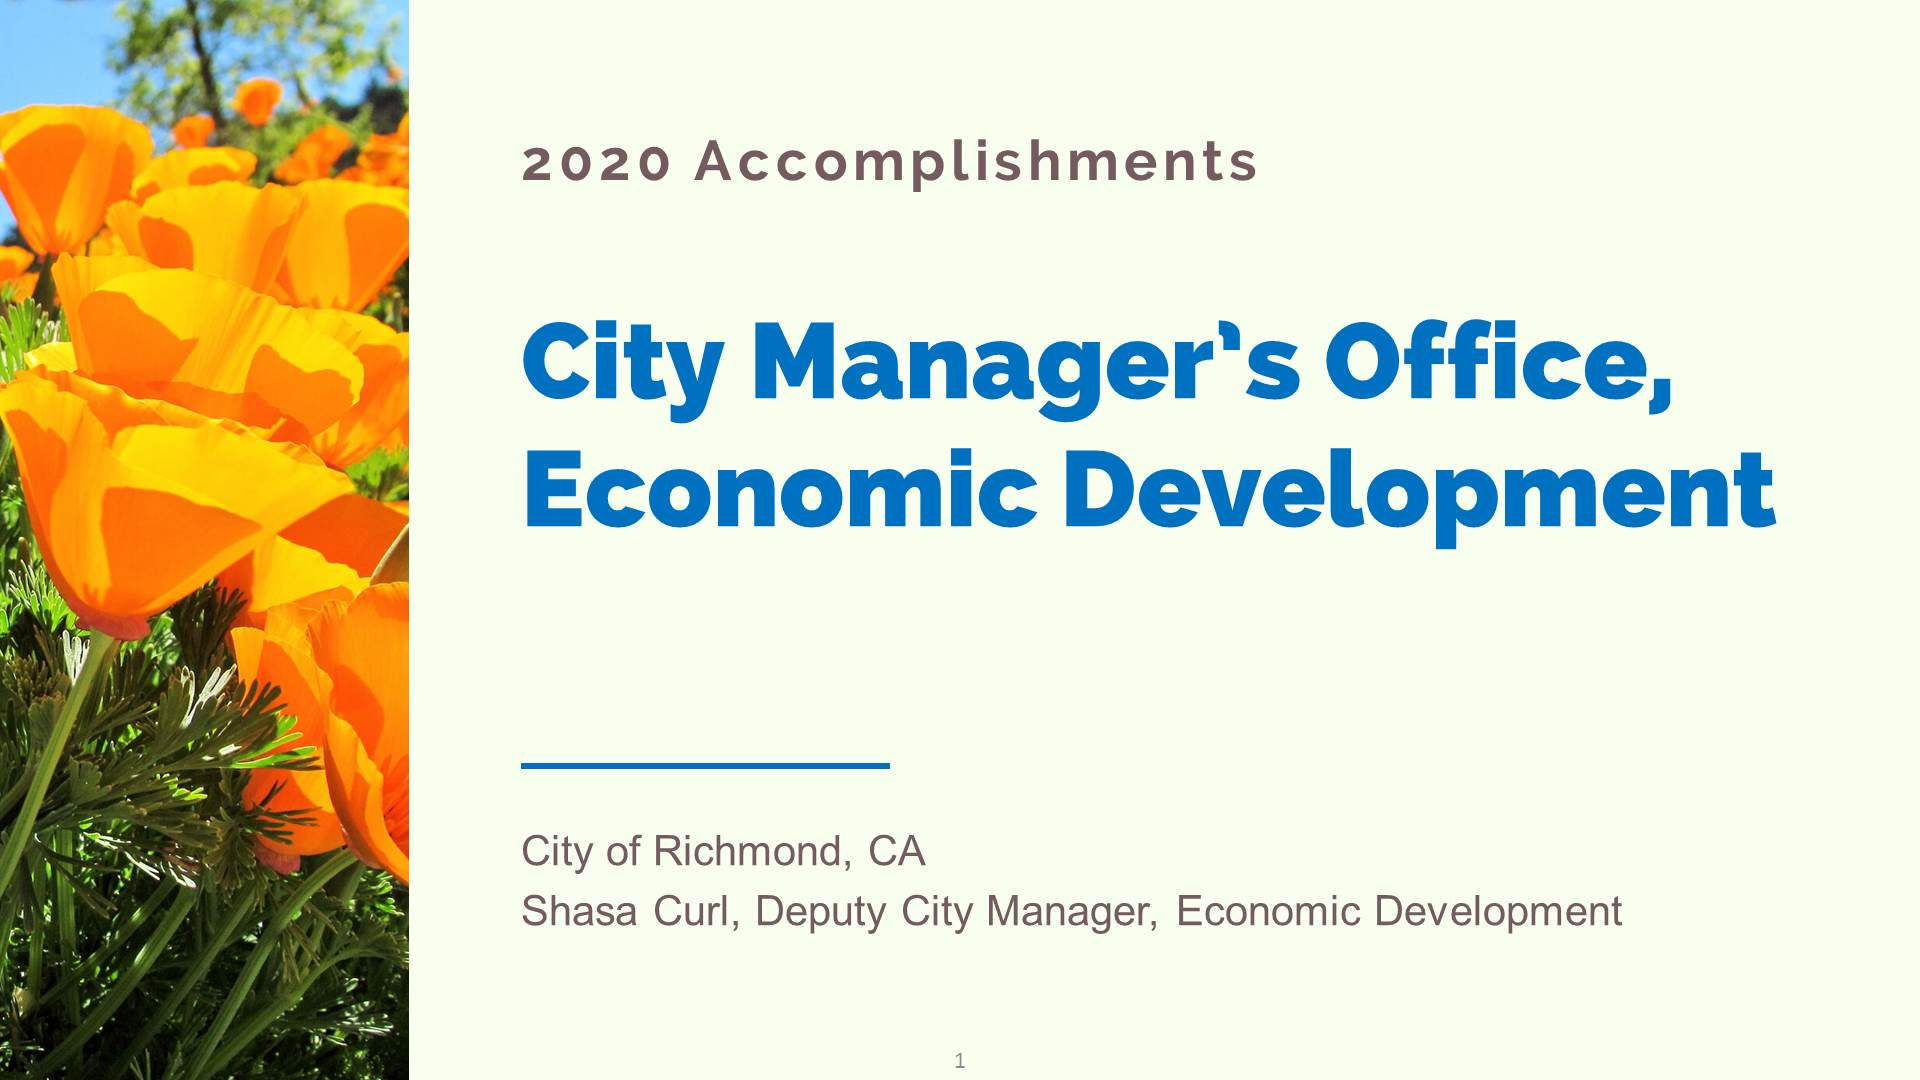 CMO-ED 2020 Accomplishments